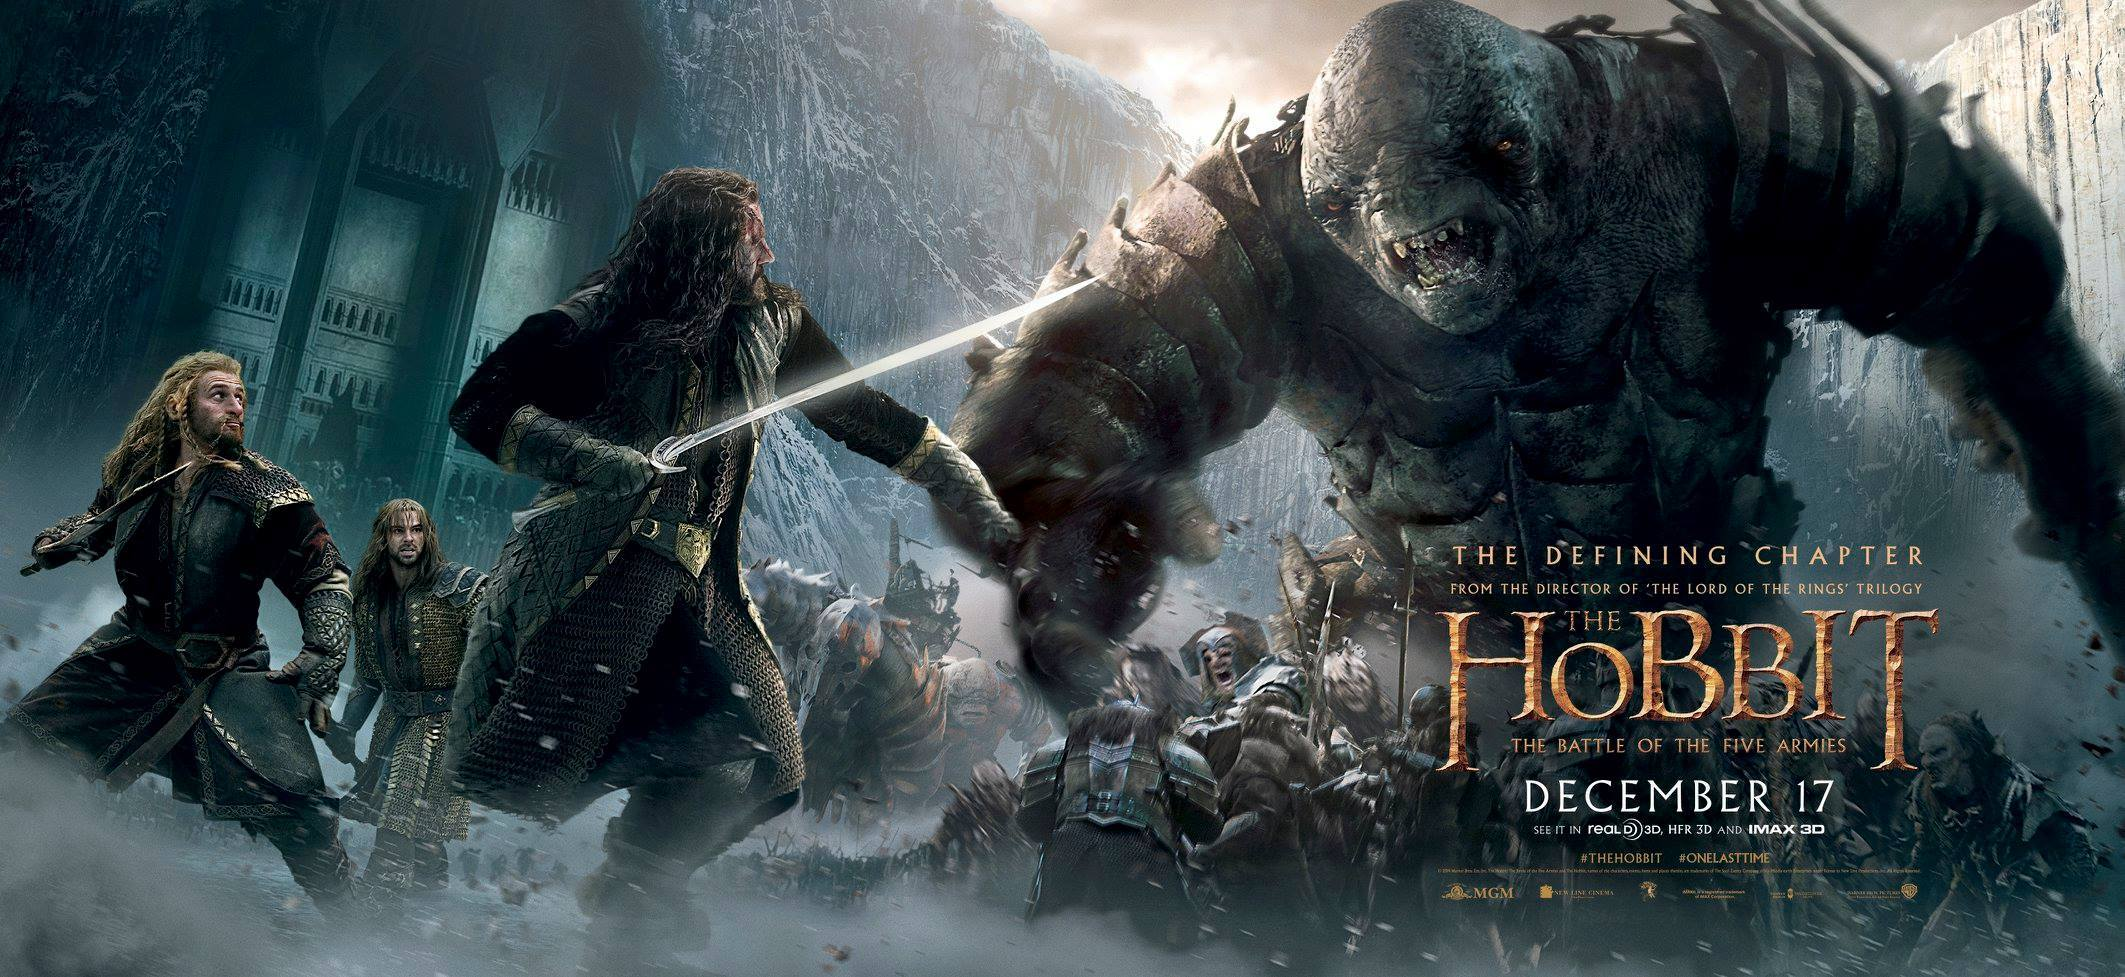 the battle of the five armies+